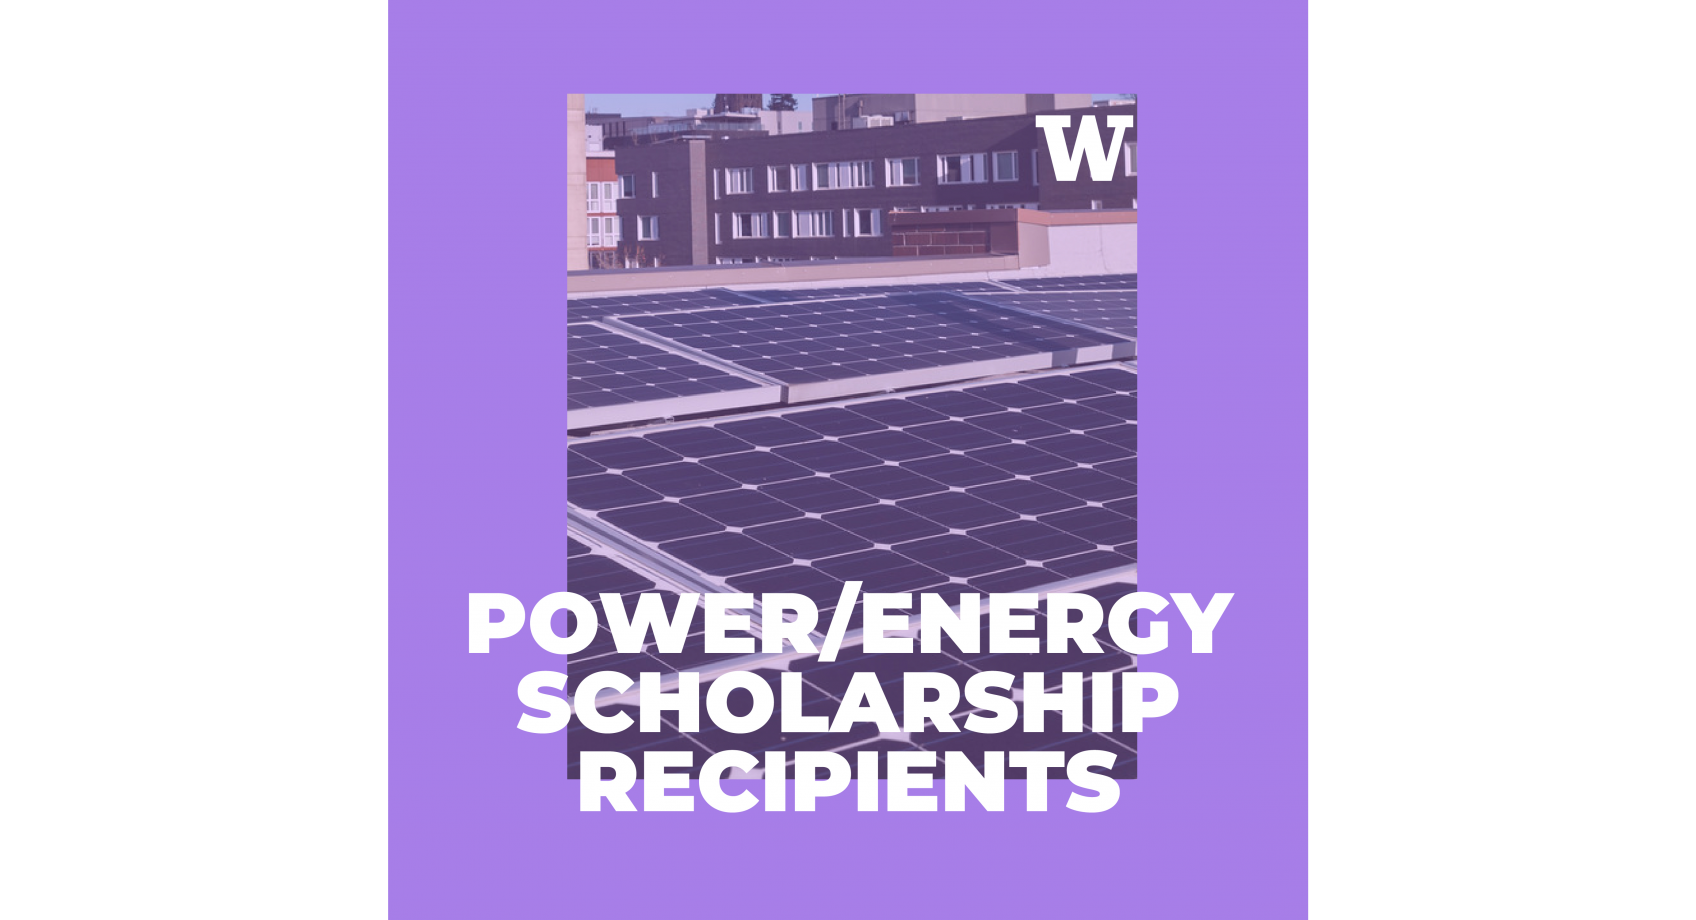 Four ECE students receive the Power & Energy Scholarship presented by IEEE Banner